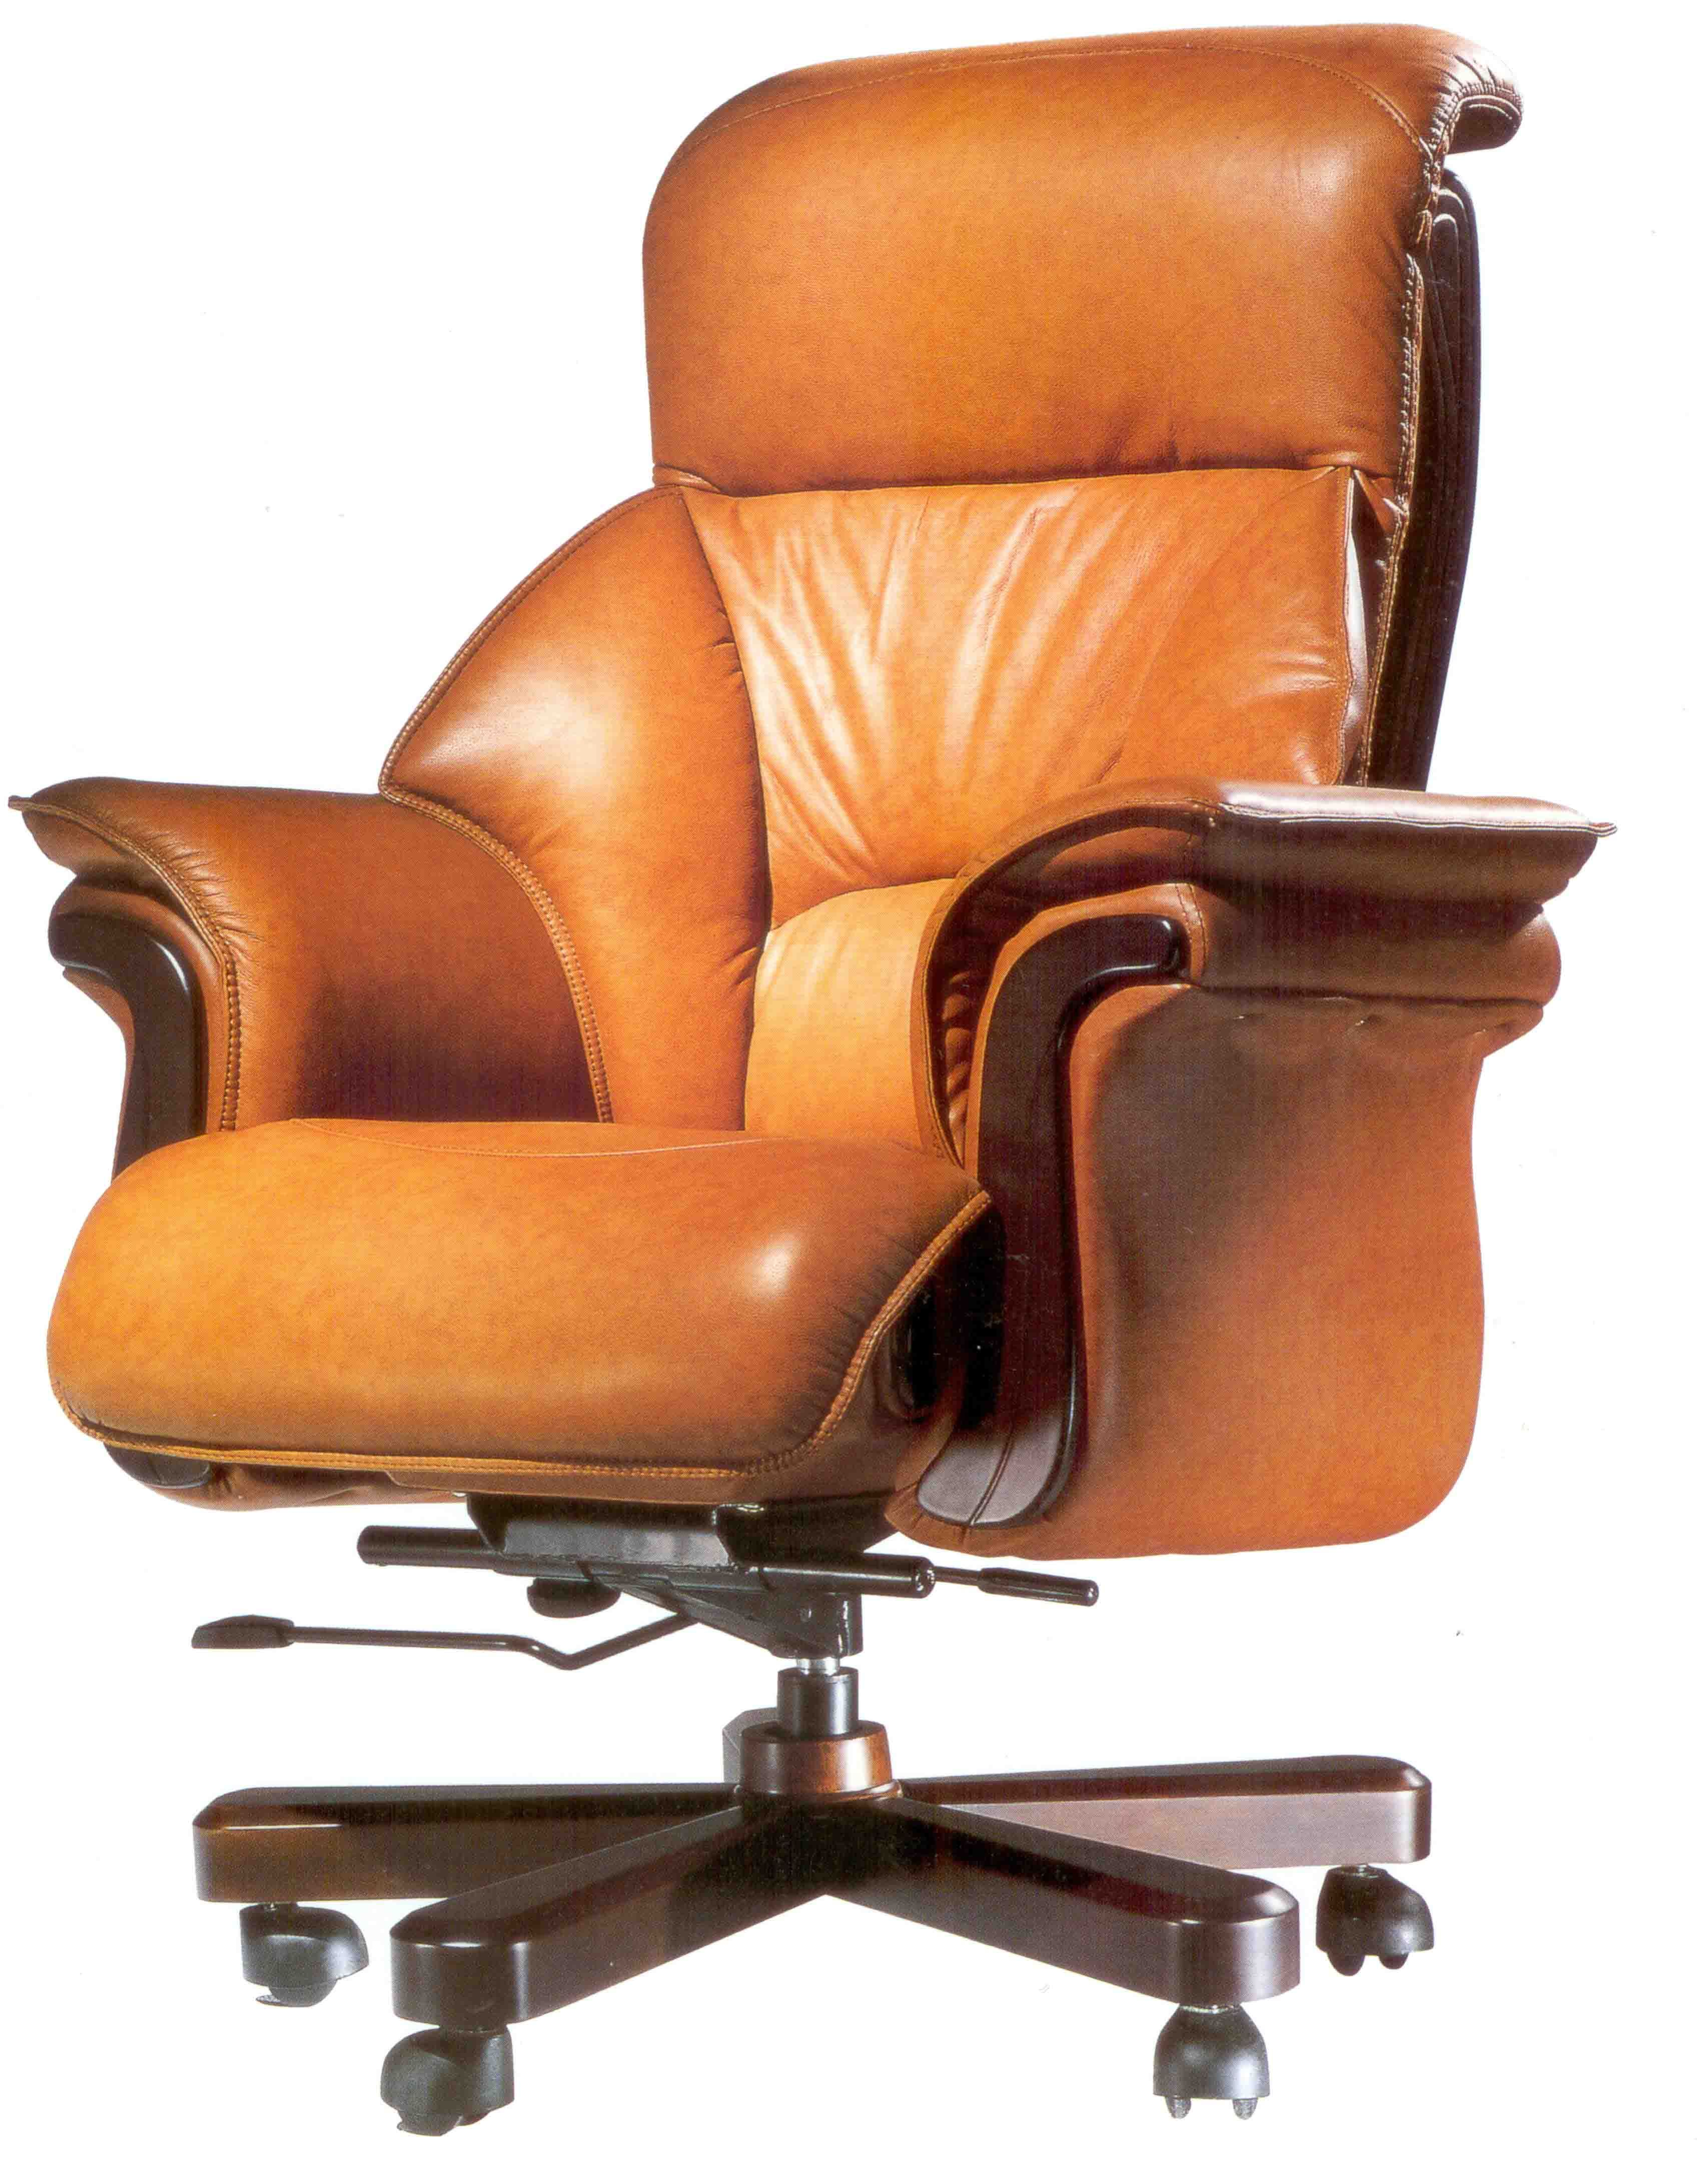 luxury office chair. Retro Leather Office Chairs Luxury Chair